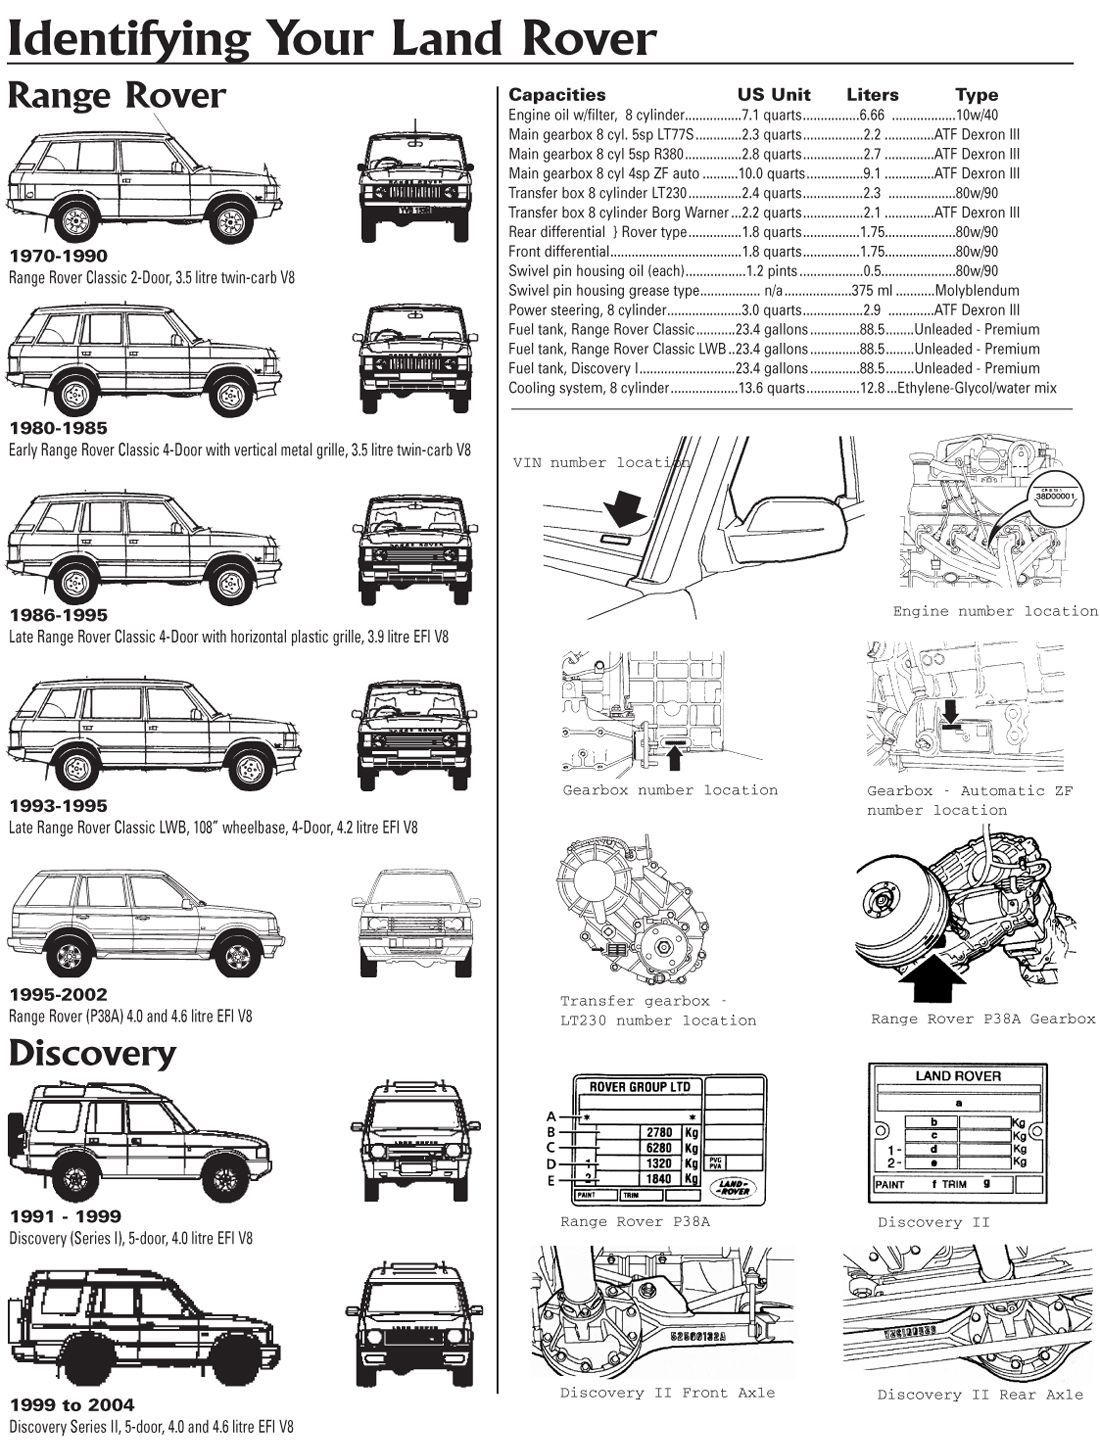 Land Rover Discovery Range Rover Vin Number Explained